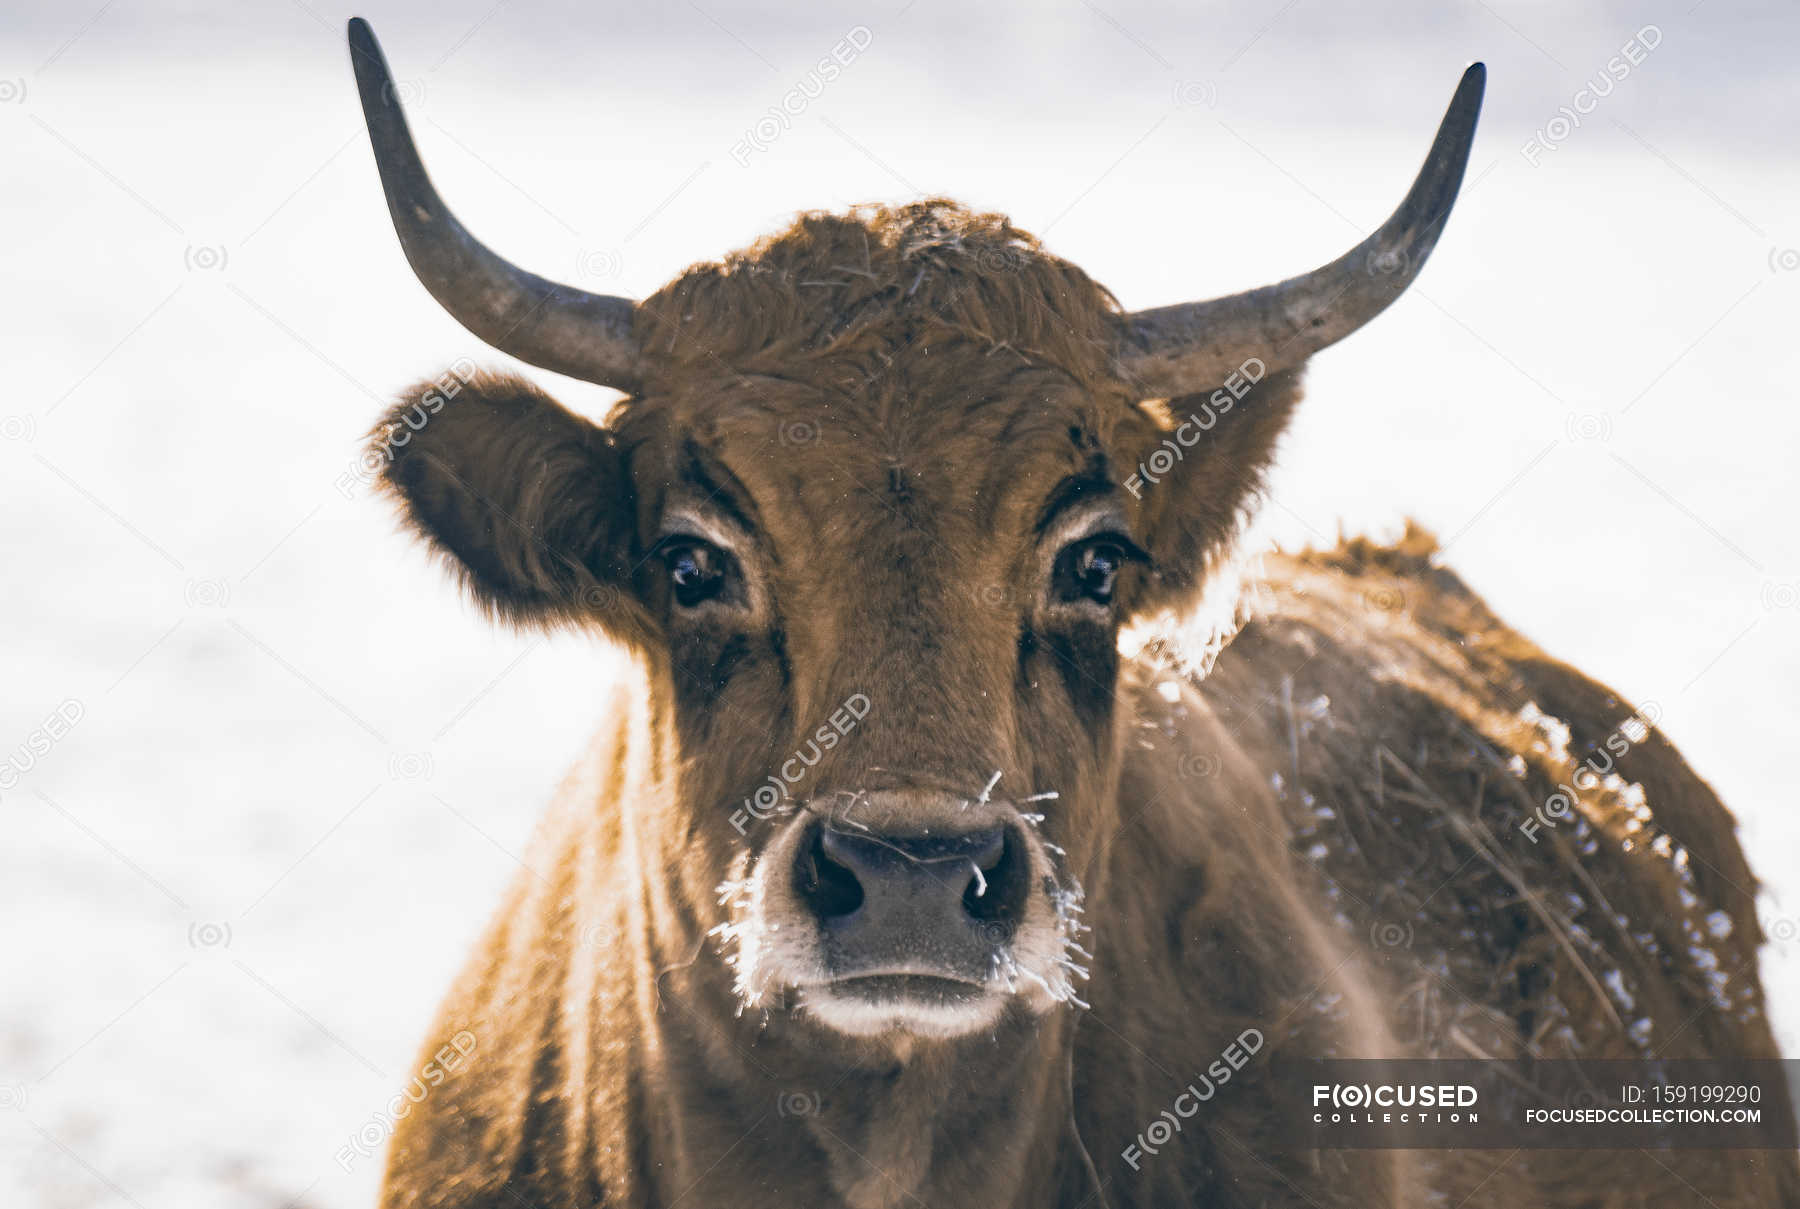 Cow with horns standing outdoors in snow — Stock Photo | #159199290